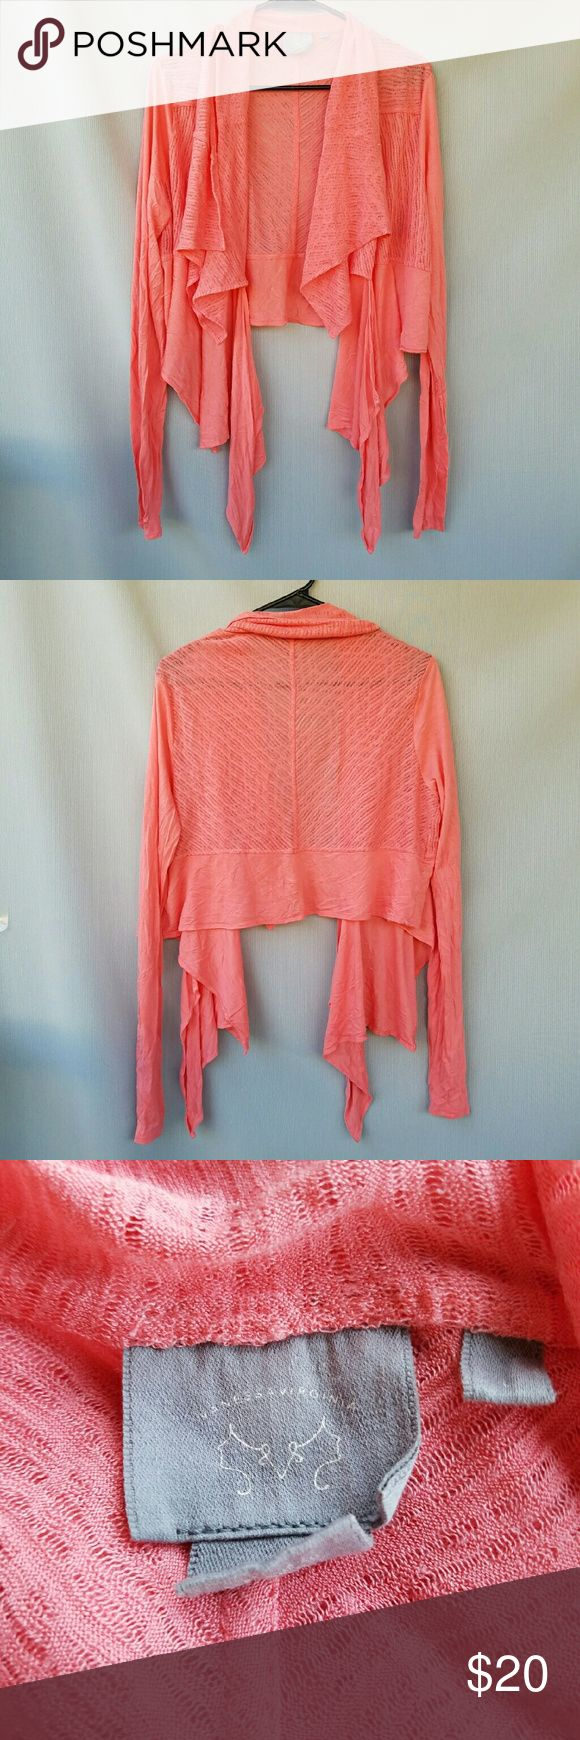 ANTHROPOLOGIE: Vanessa Virginia Coral Cardigan Excellent condition  Feel free to ask me any additional questions! Bundles 3+ 15% off. Happy Poshing! No trades, or modeling. Anthropologie Sweaters Cardigans